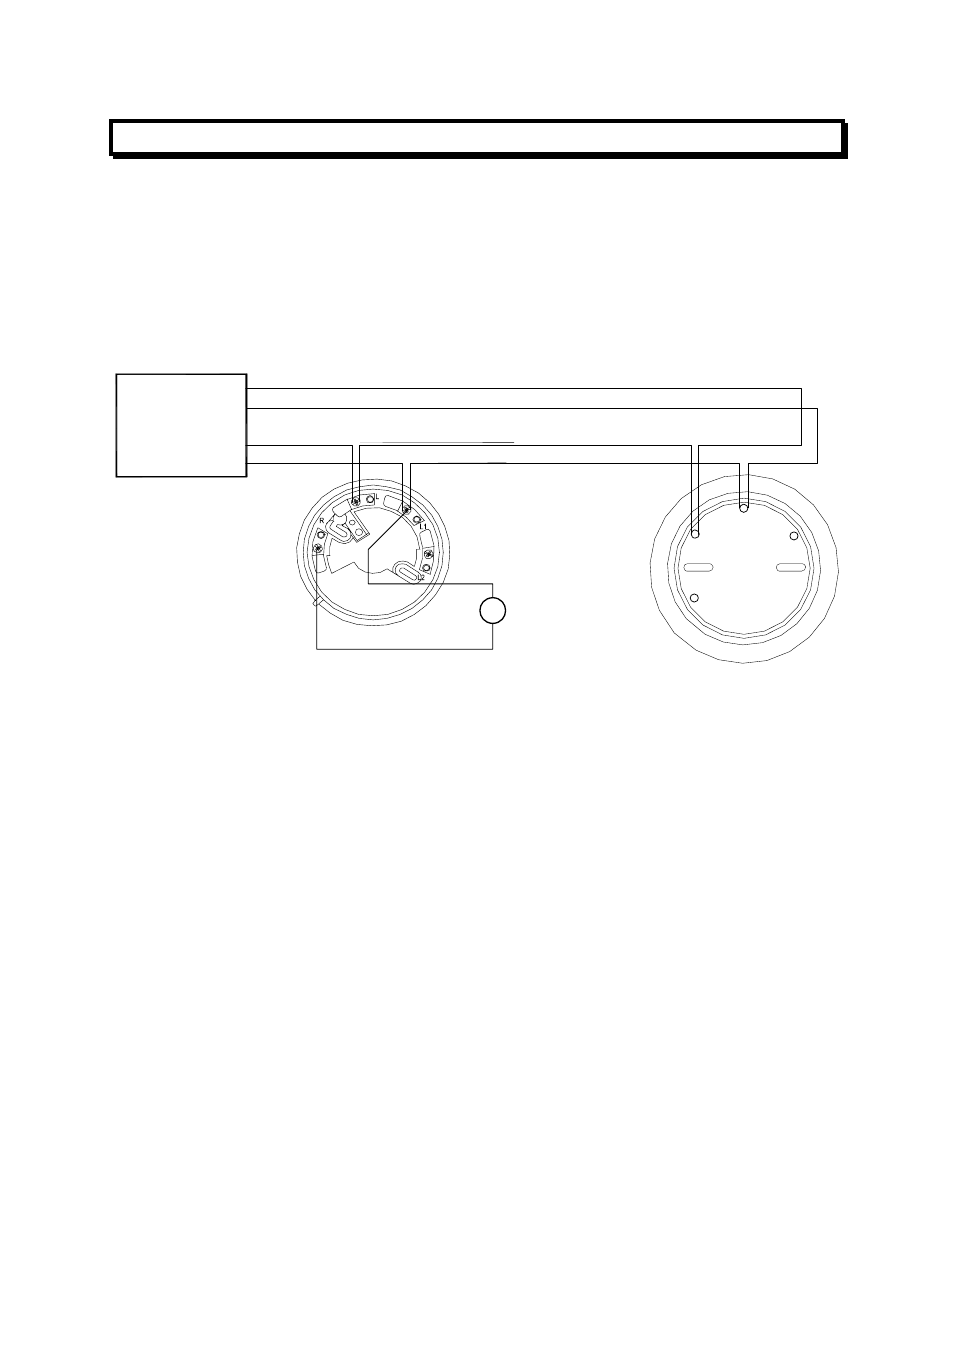 hight resolution of 11 mub universal base 1 general 2 mub and 5b wiring tyco mx4428 user manual page 41 134